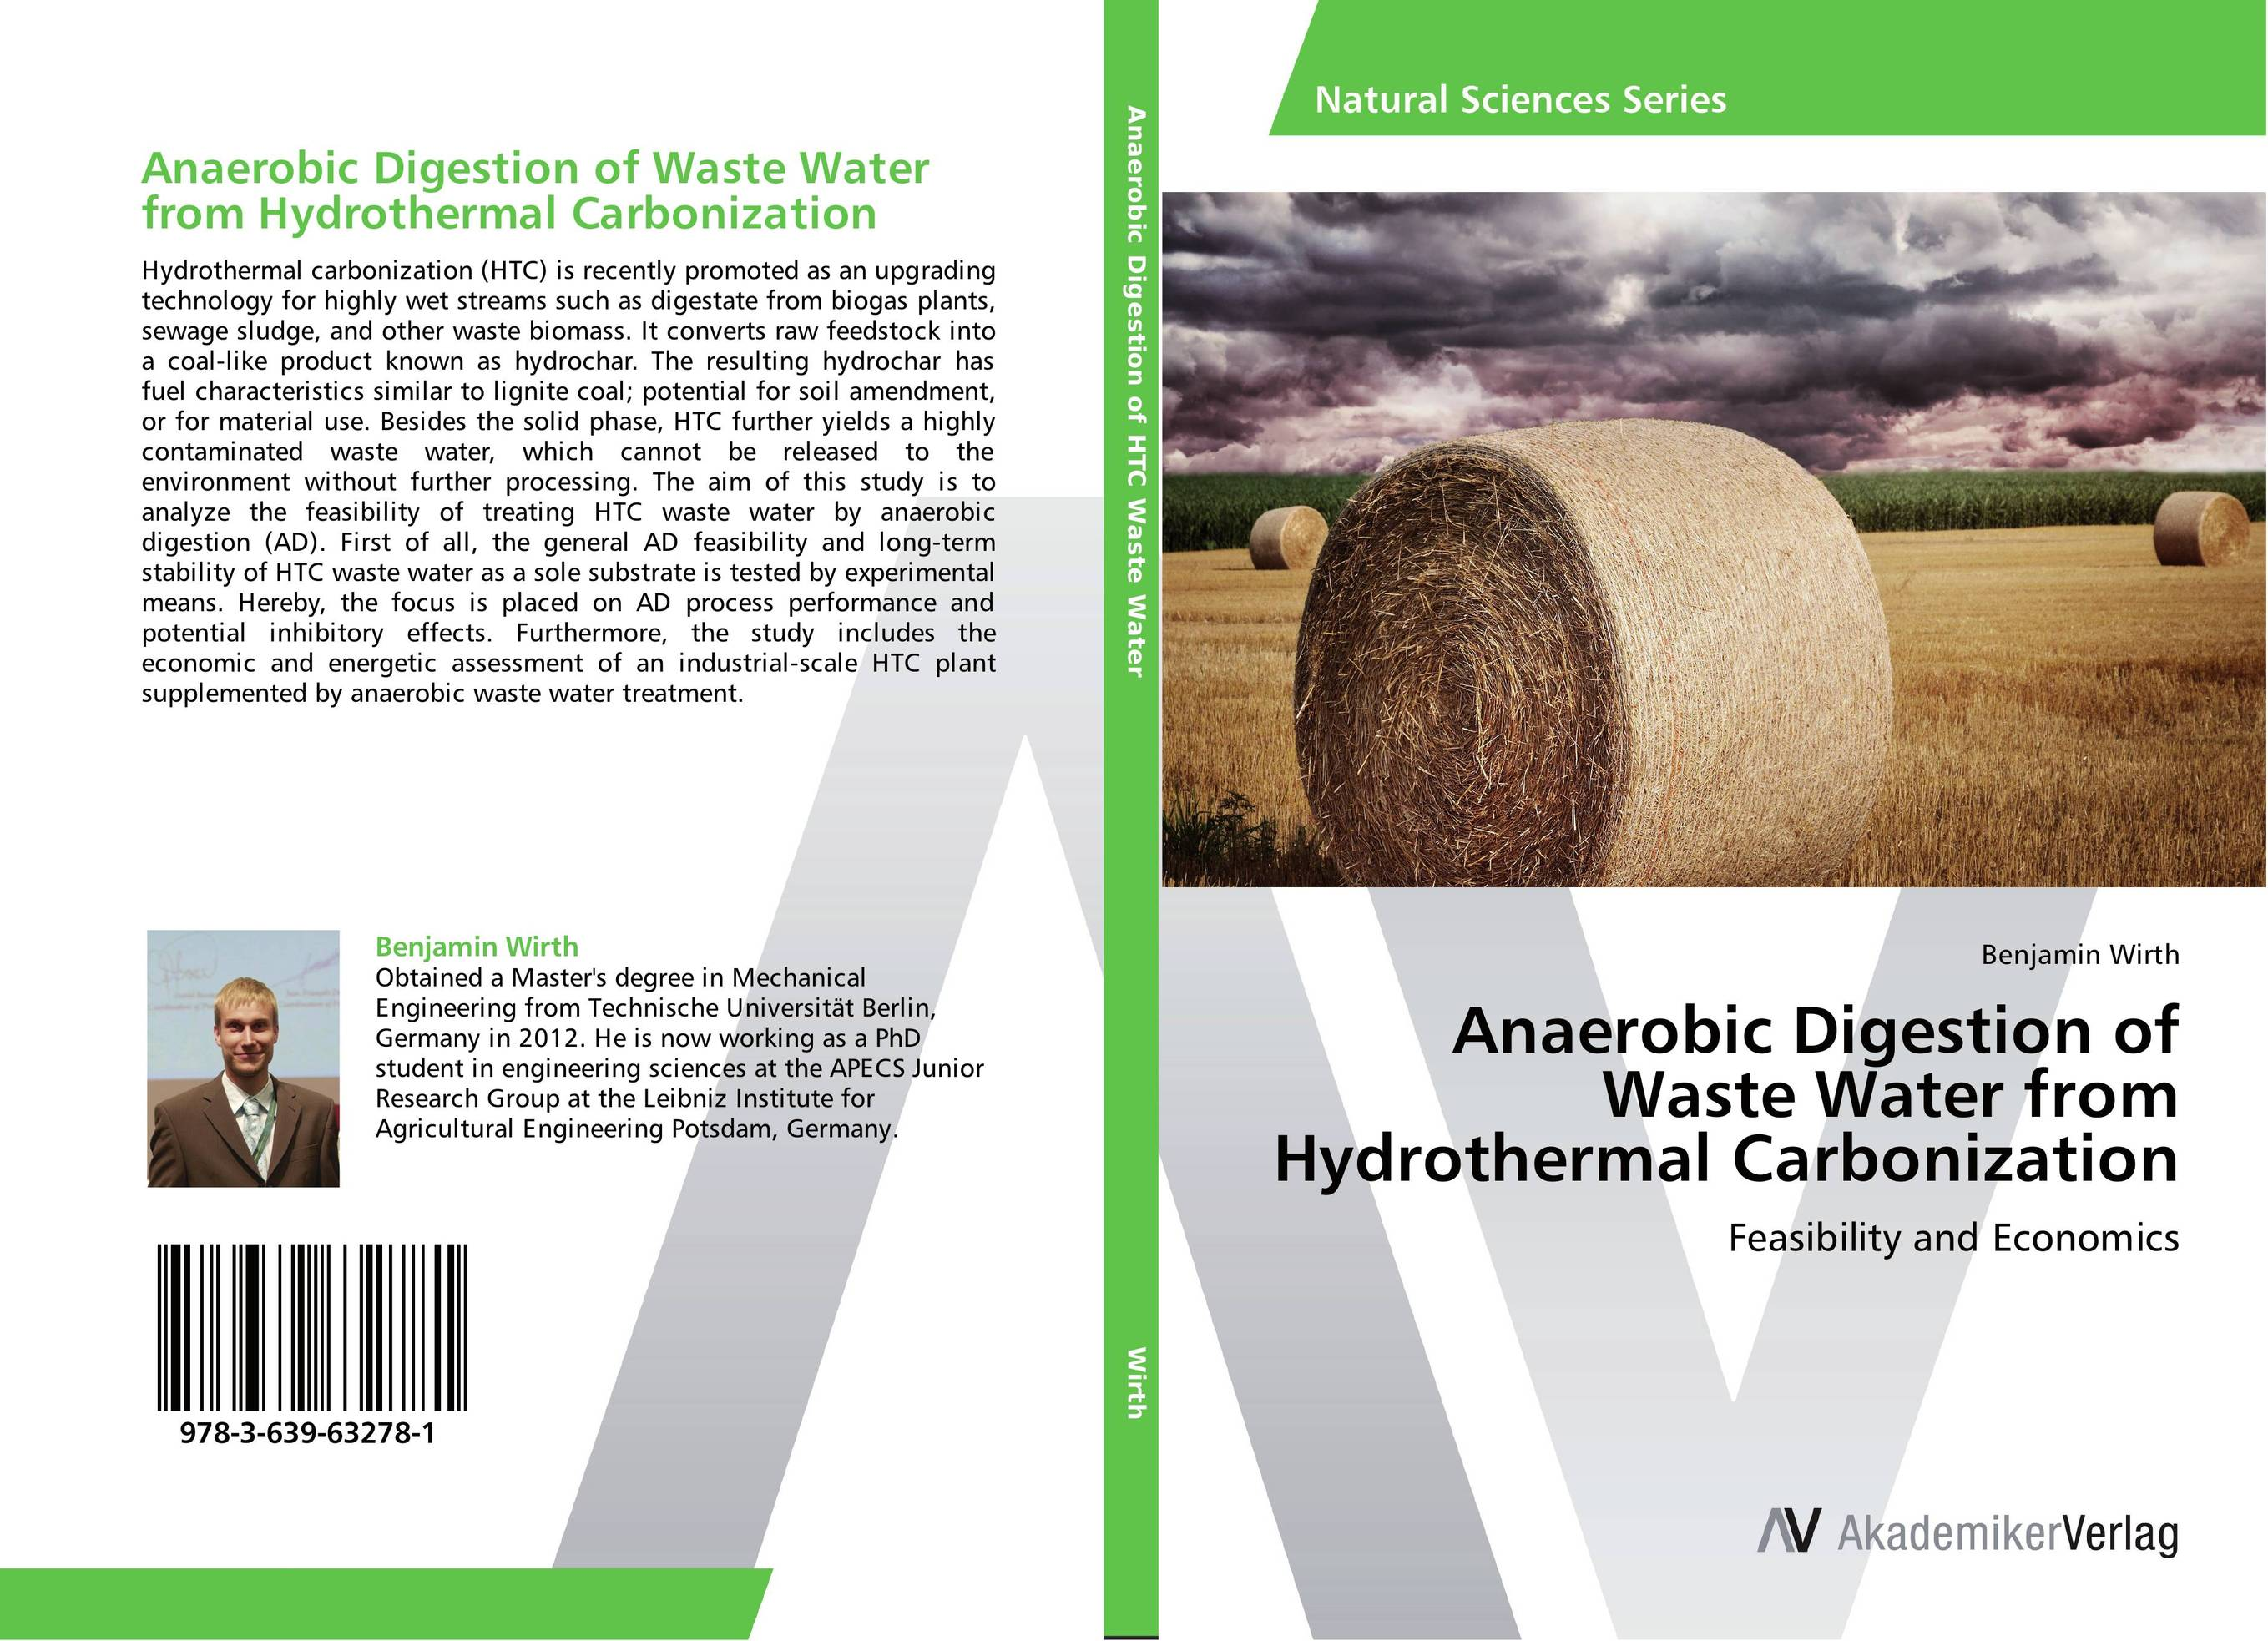 Anaerobic Digestion of Waste Water from Hydrothermal Carbonization antimicrobial contaminant elimination from water and waste sludge